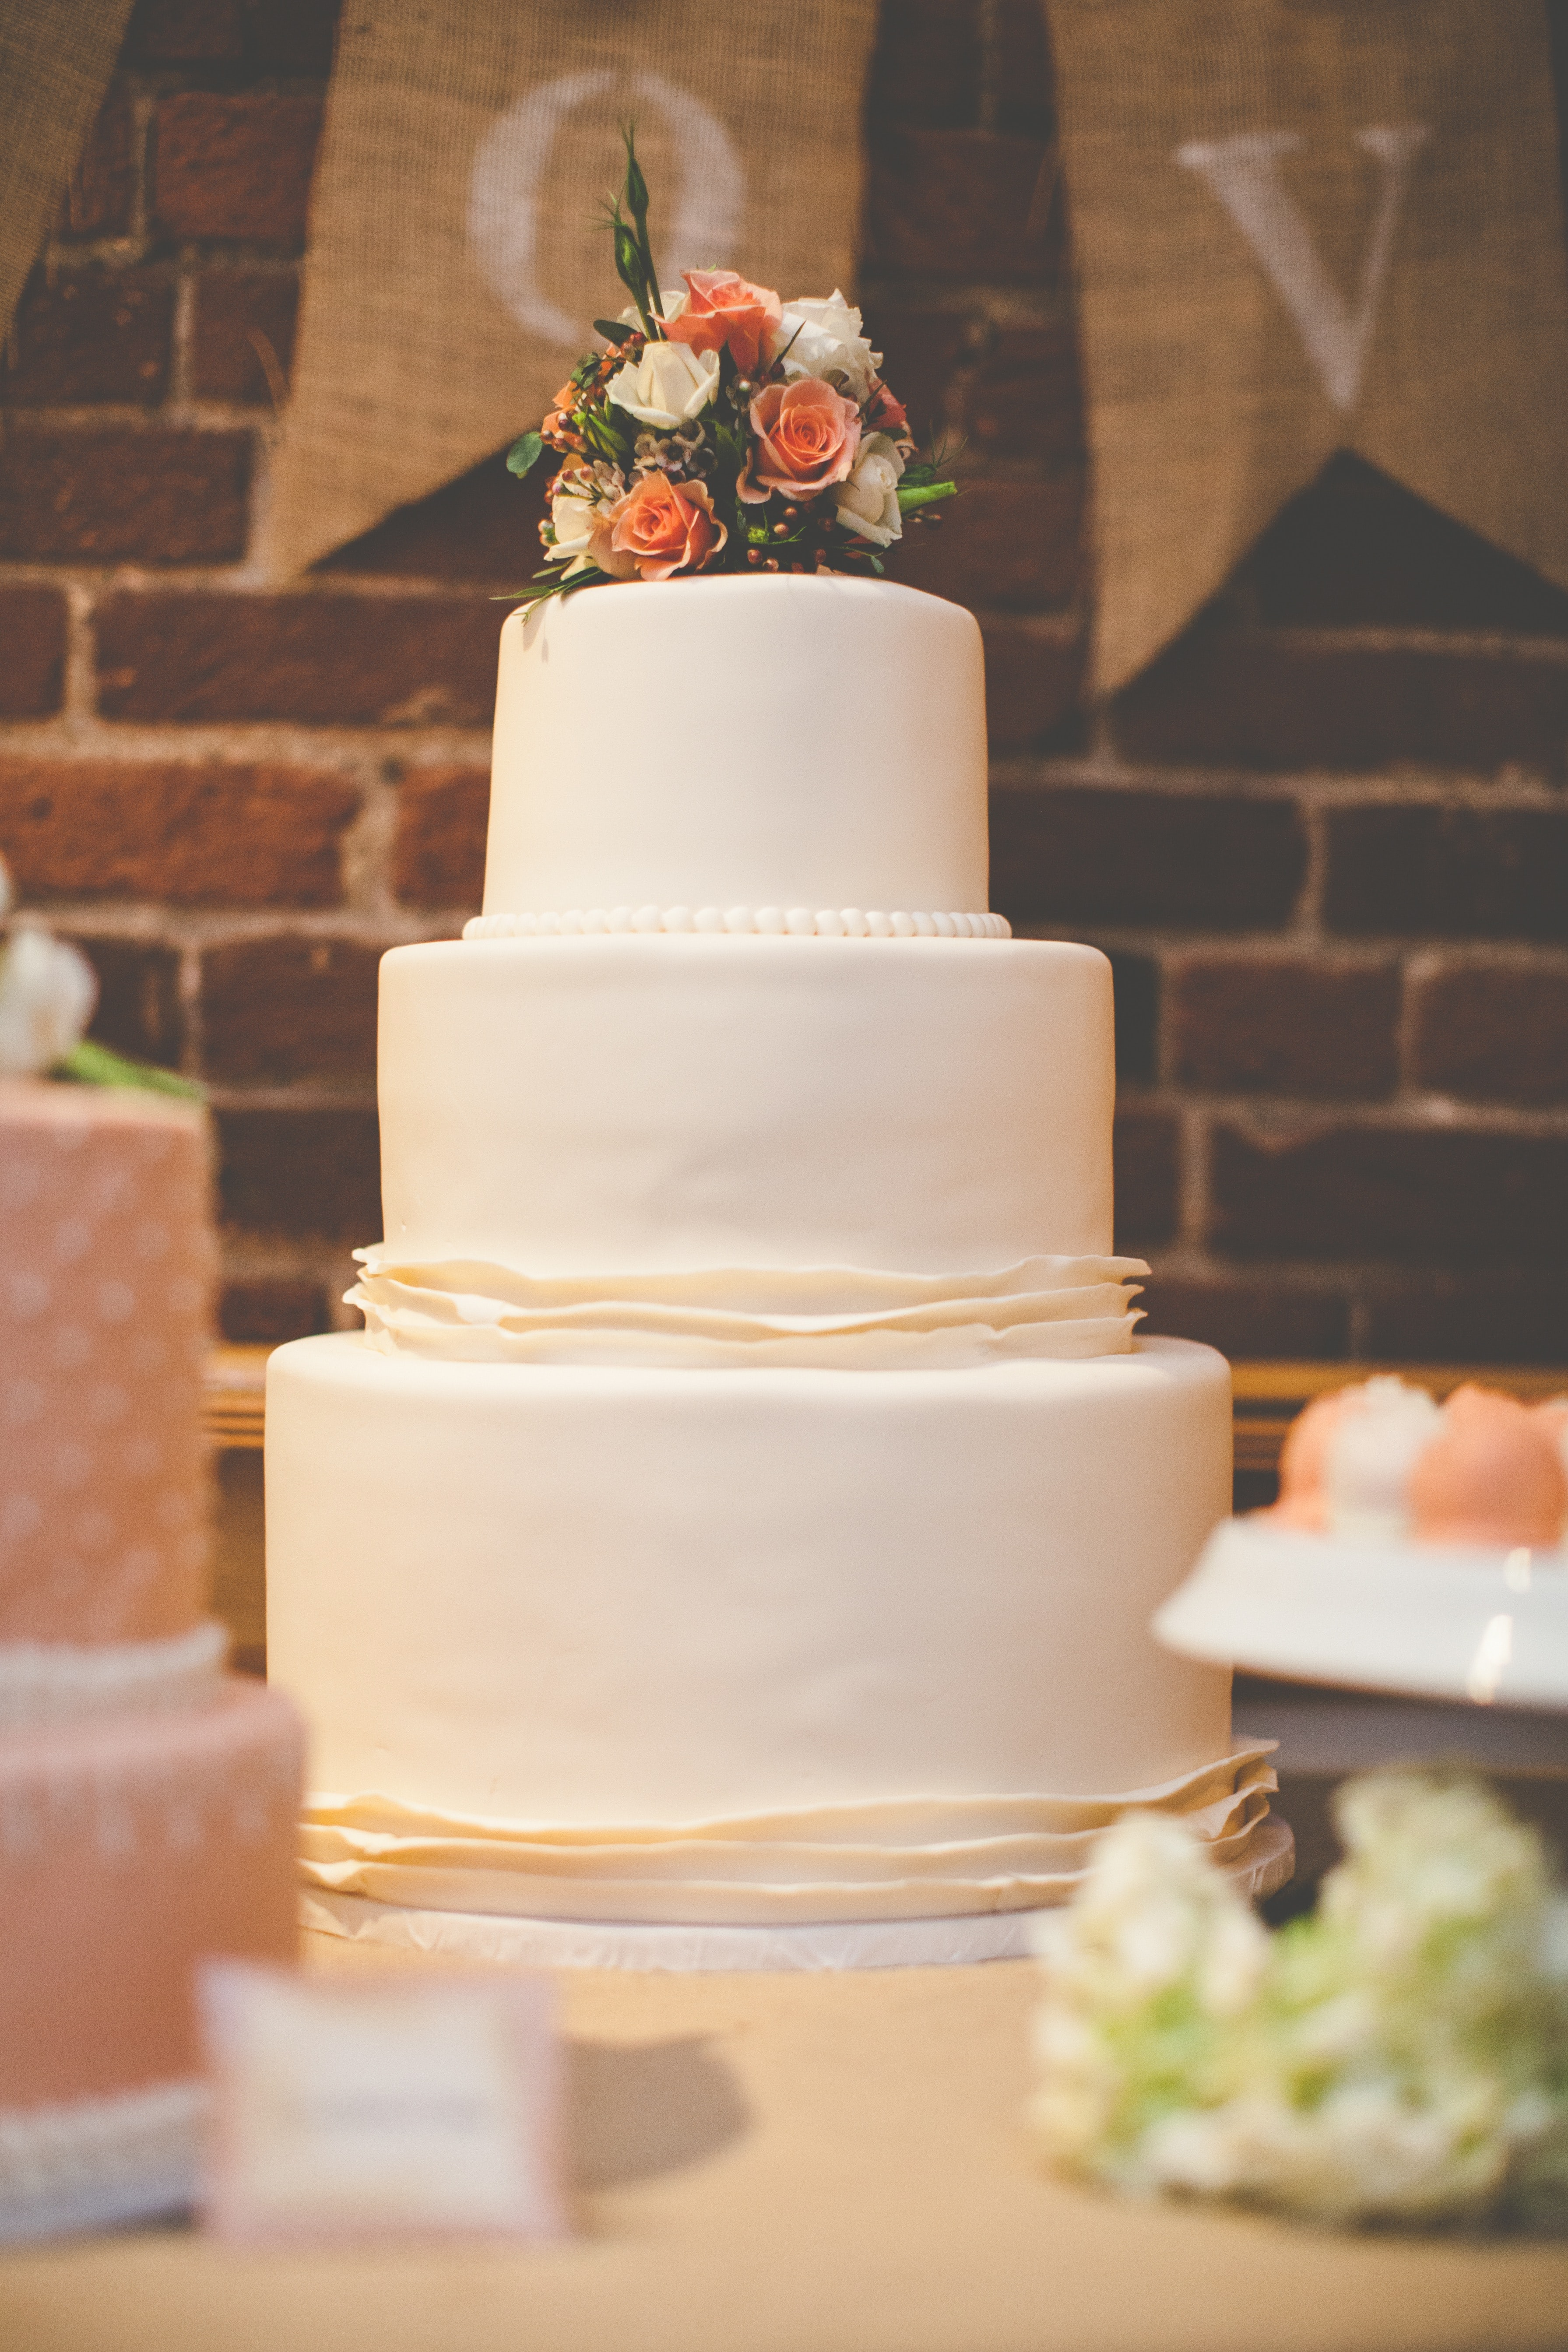 Three tier wedding cake in front of brick wall Noblesville